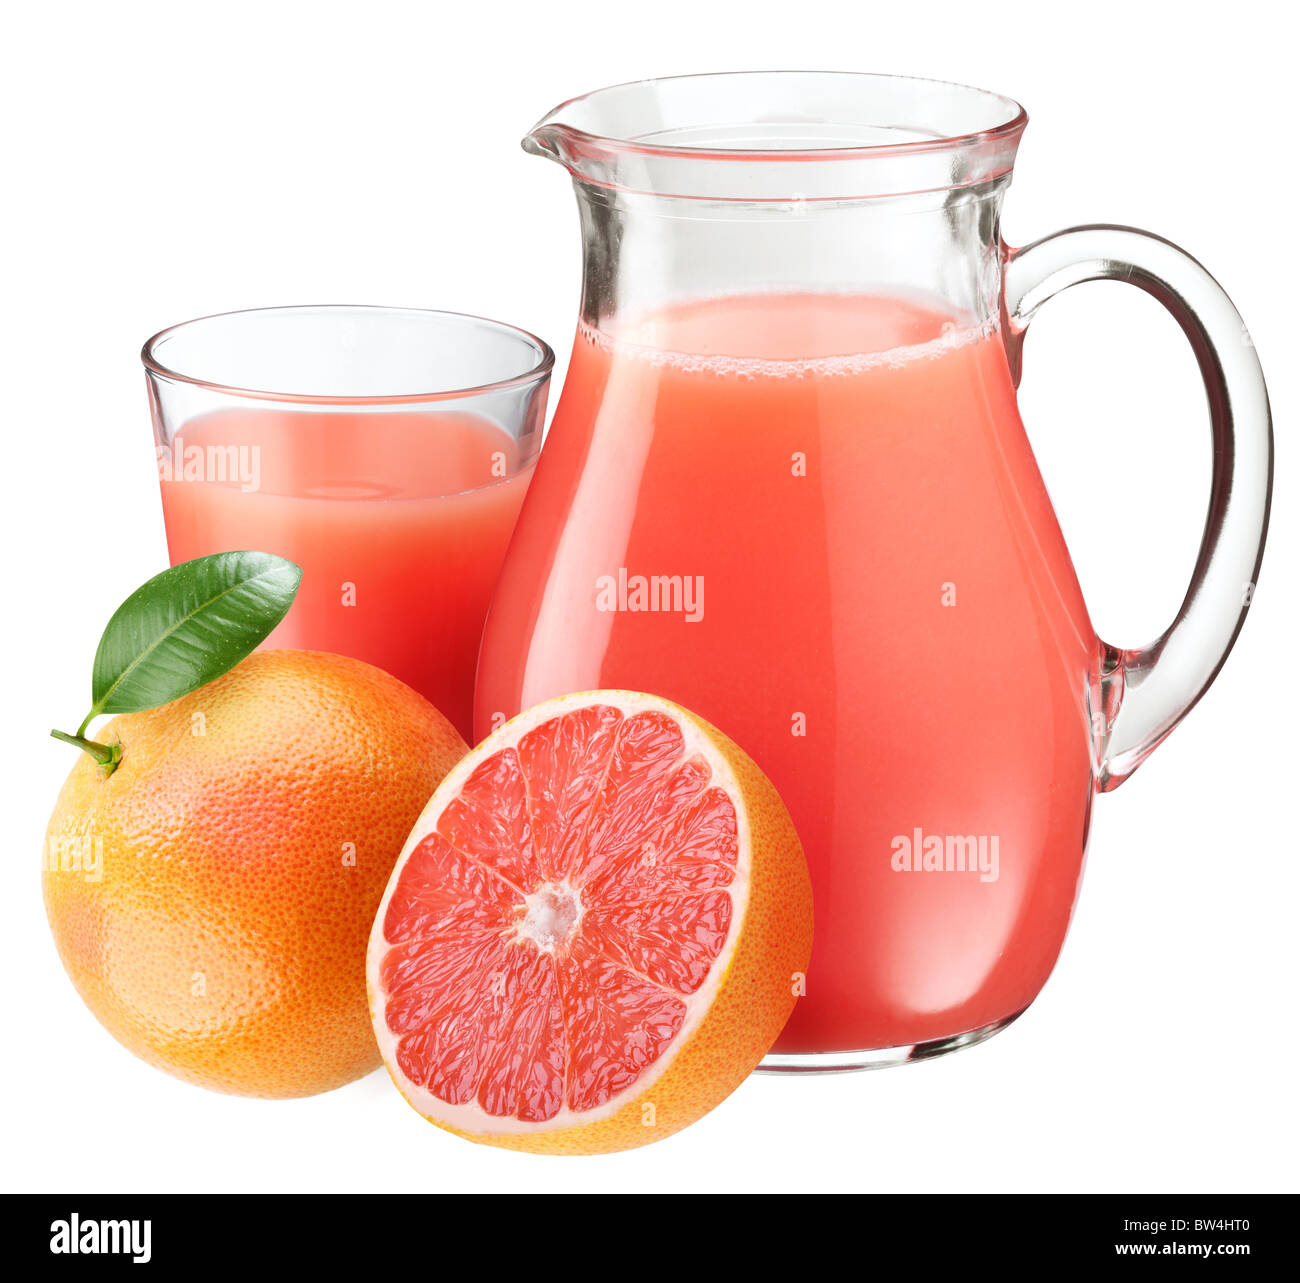 Full glass and jar of grapefruit juice and fruits in front. - Stock Image